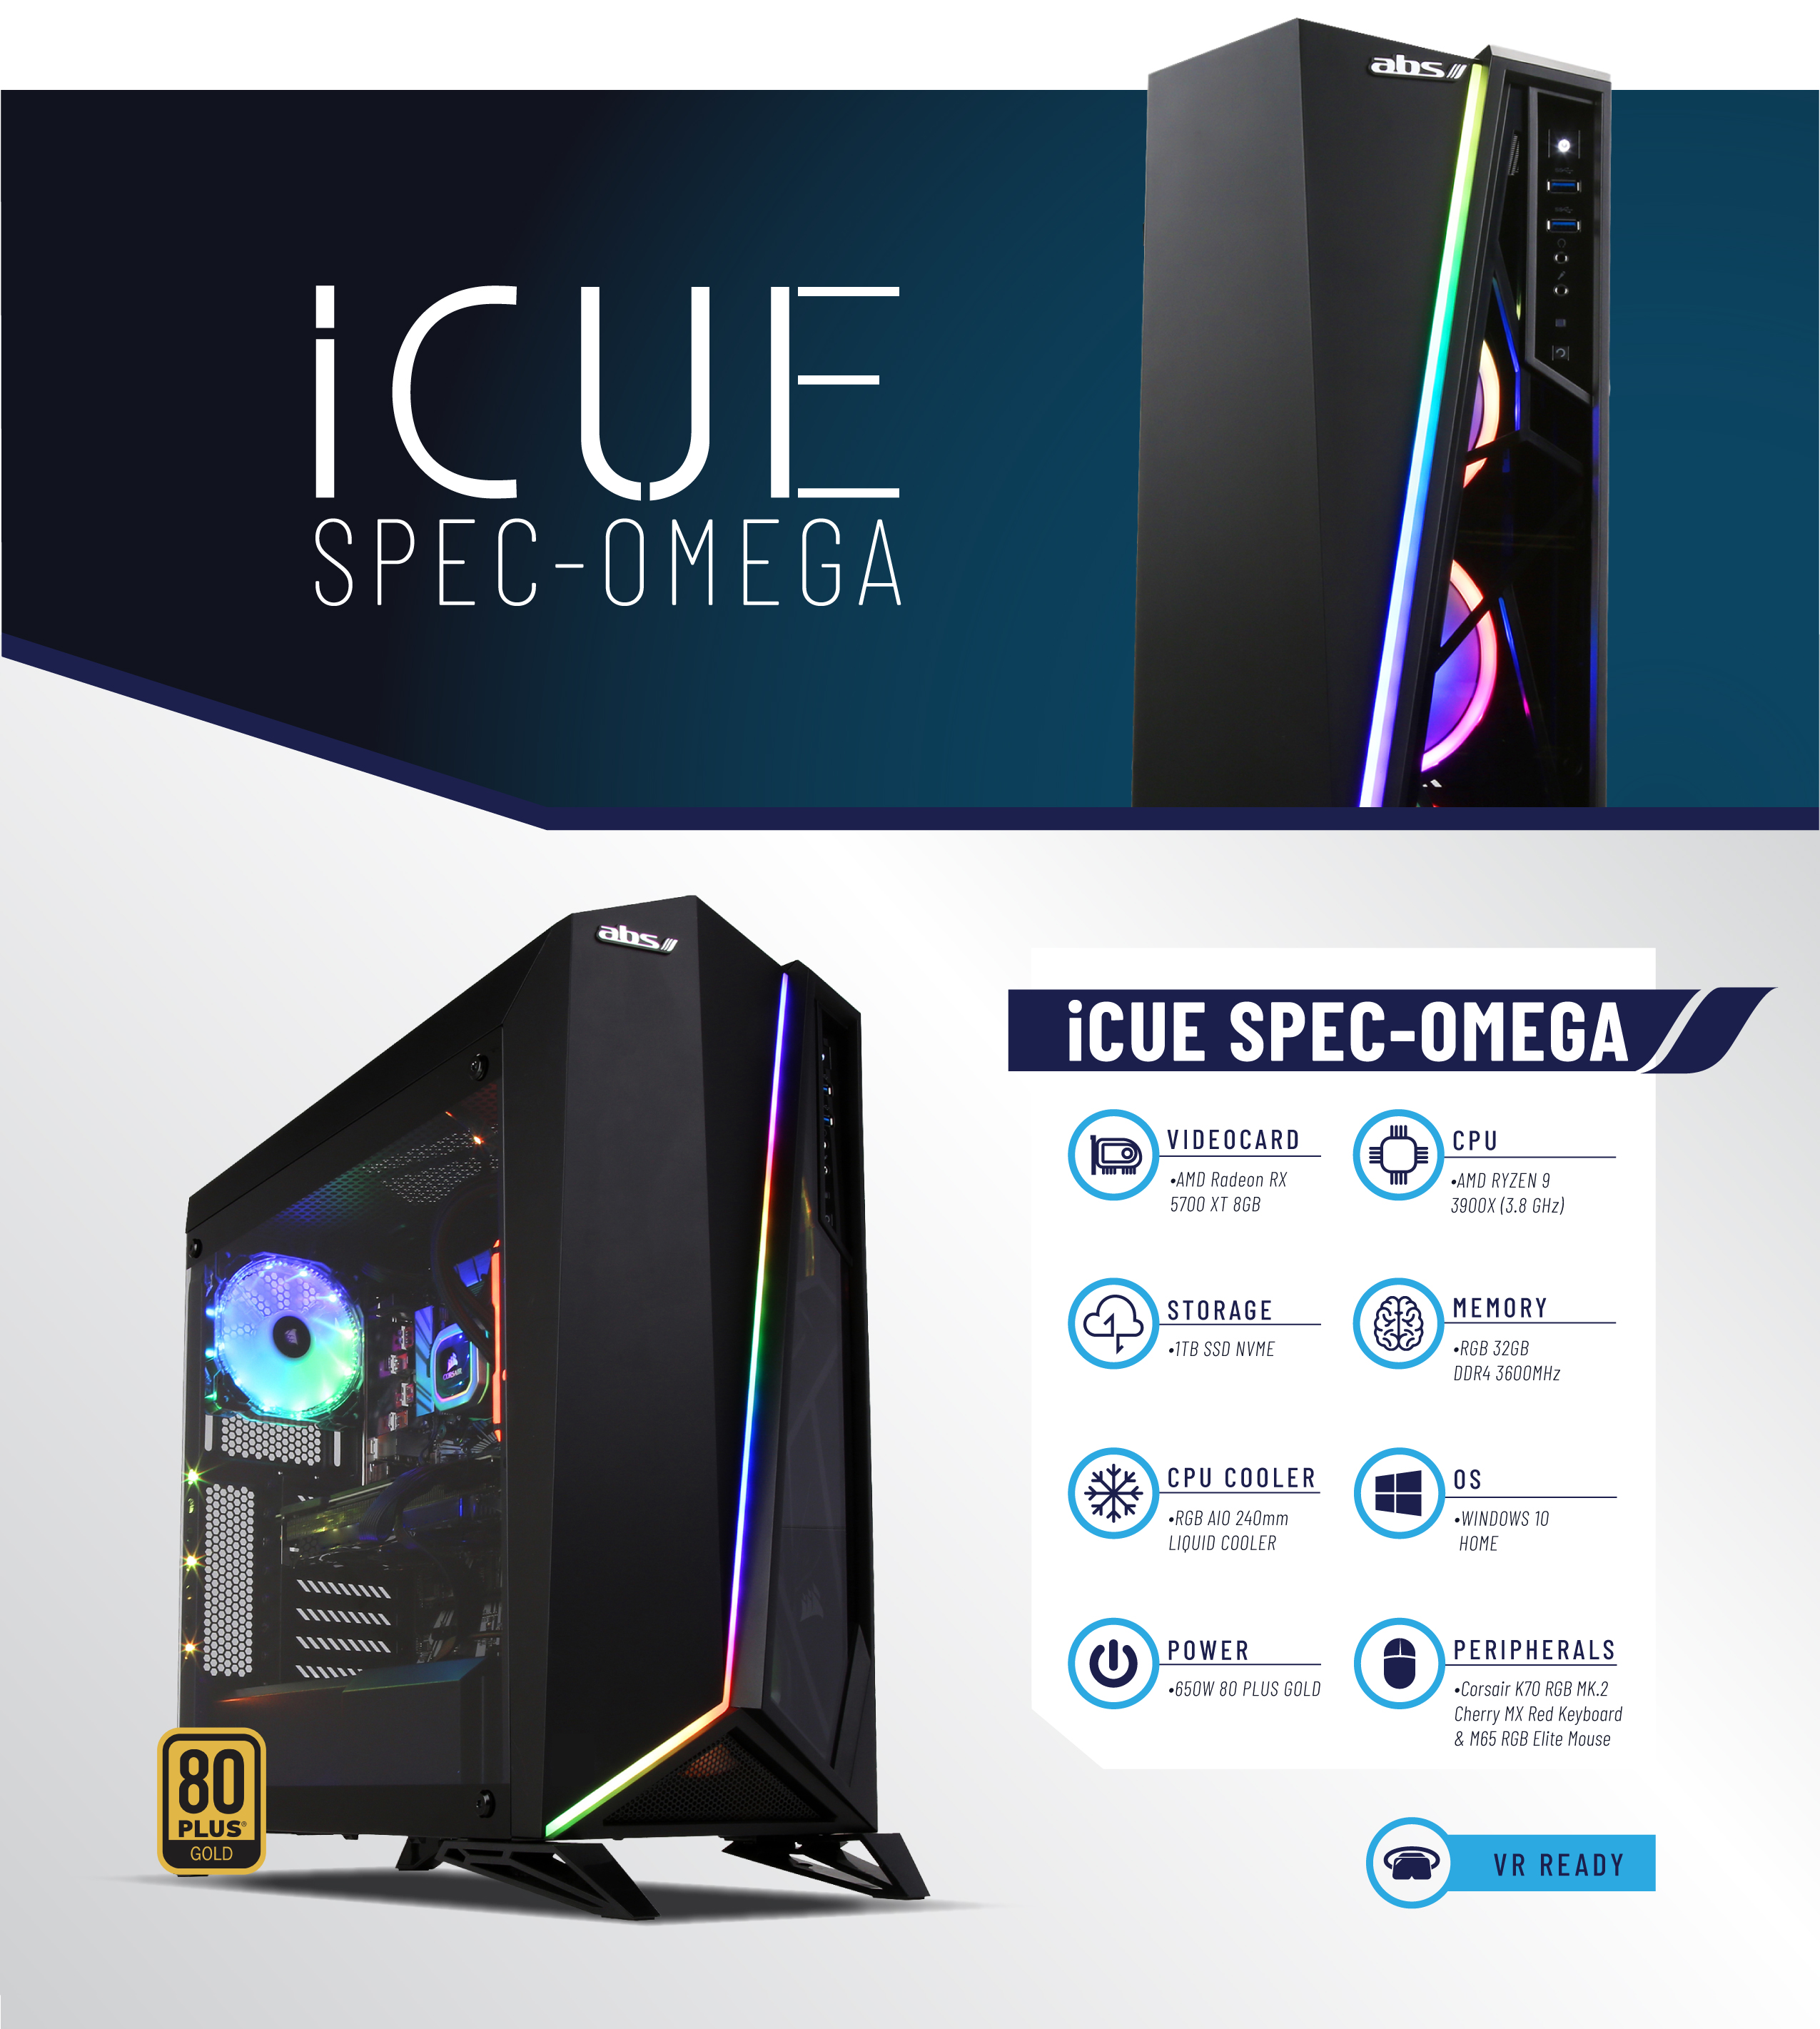 ABS iCue Spec-Omega - RYZEN 9 3900X - Radeon RX 5700 XT - 32GB DDR4 3600MHz  - 1TB NVMe SSD - Liquid Cooling (240mm) - Gaming Desktop PC - Newegg com